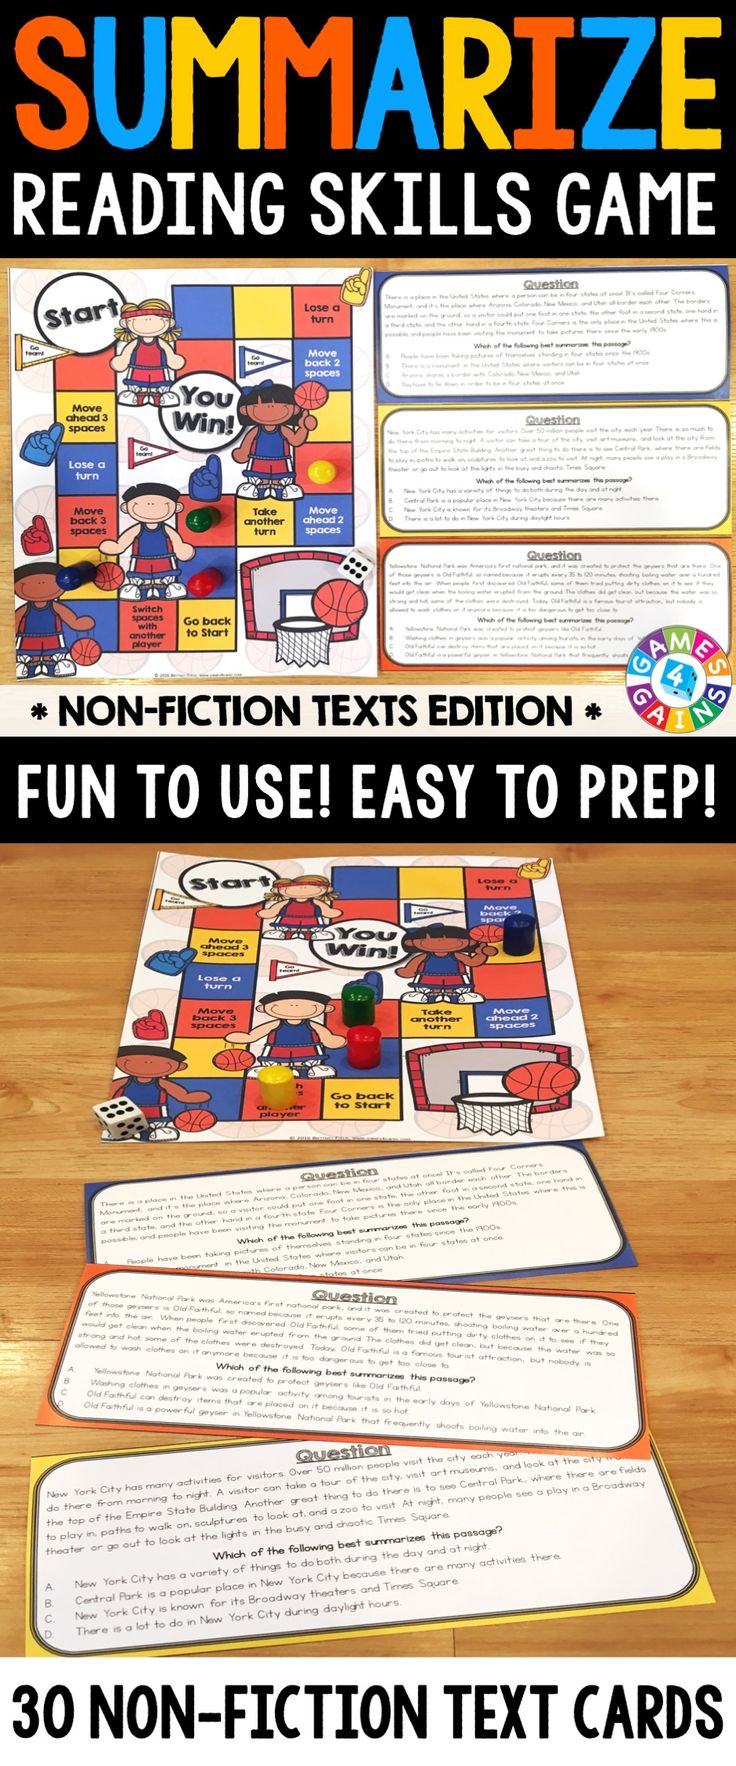 "Summarizing (Non-Fiction) Board Game contains 30 game cards and a game board to help students practice summarizing informational text. Each card contains a short non-fiction paragraph followed by the question, ""Which of the following best summarizes the passage?"". Students have to select the correct answer from four possible choices."